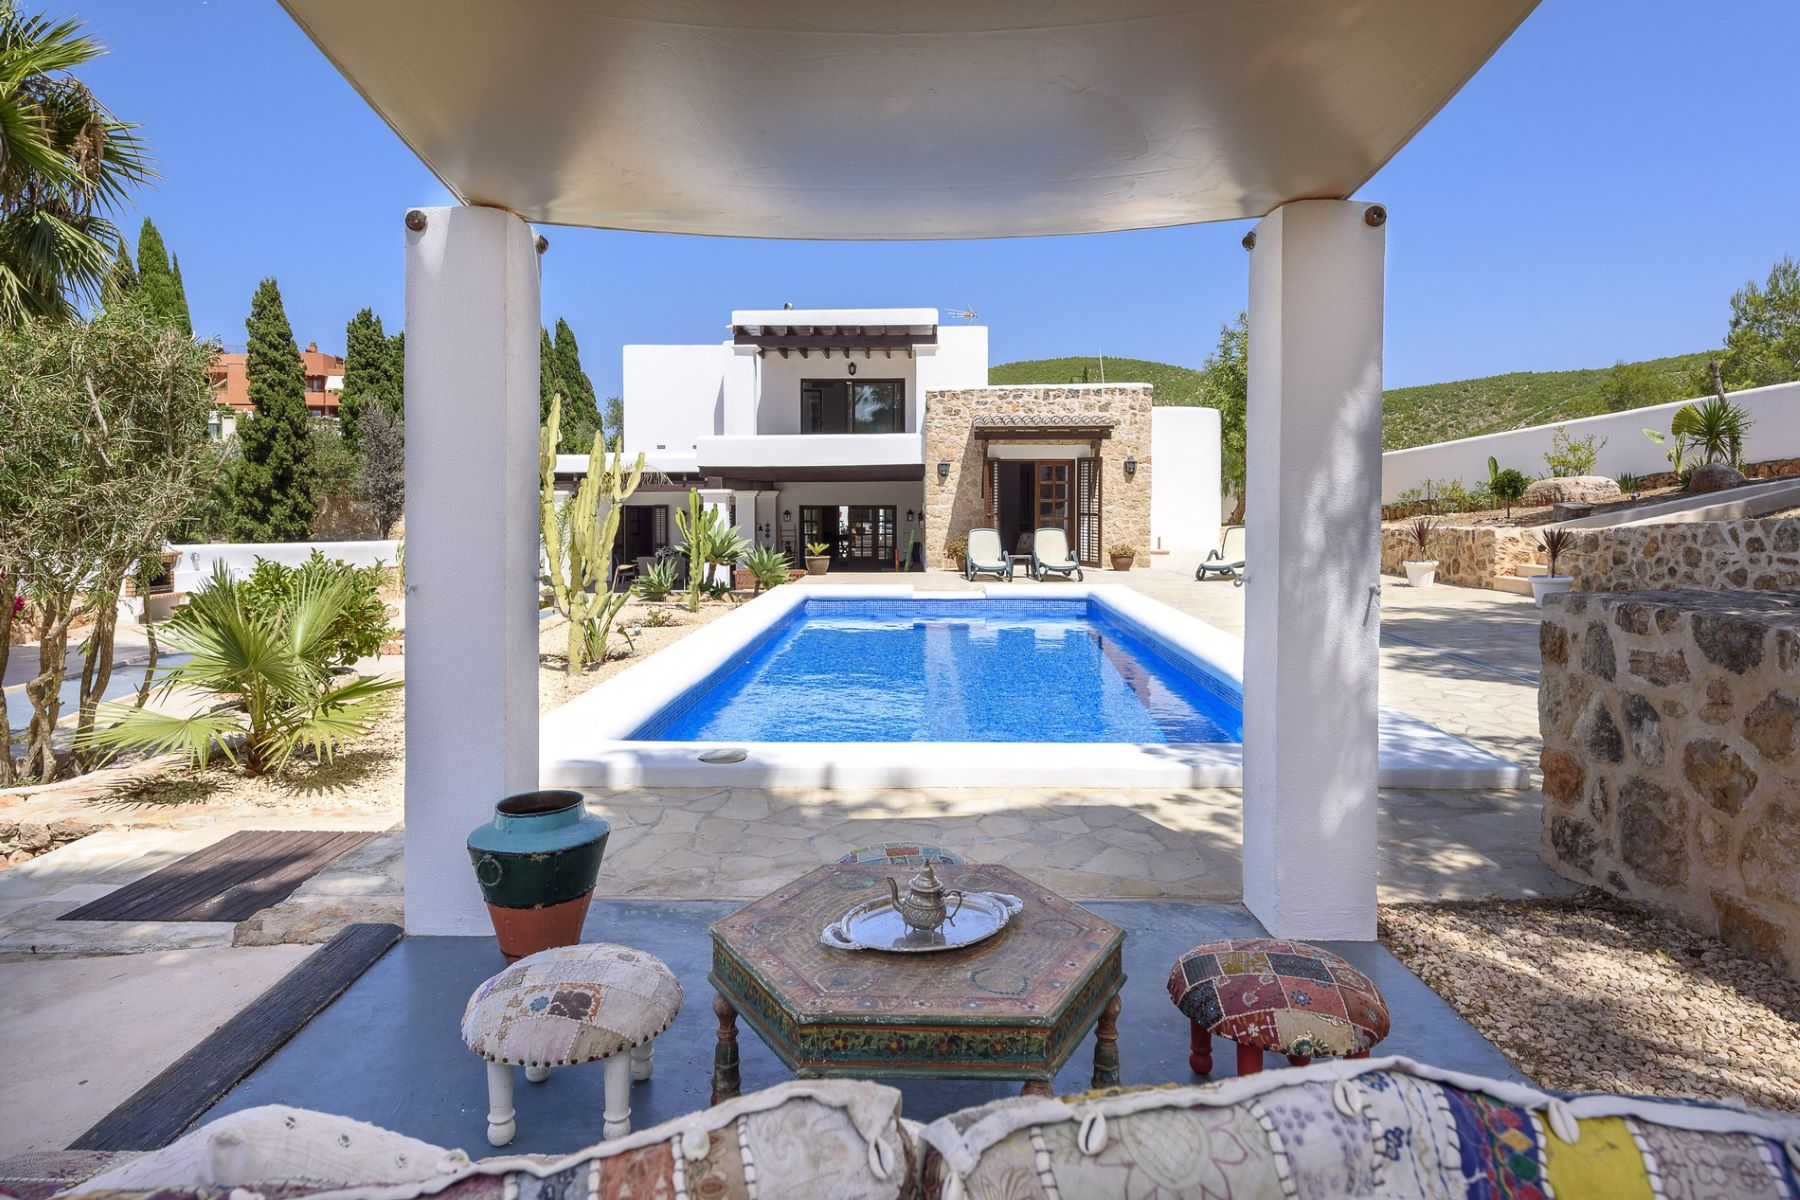 Single Family Home for Sale at Charming, rustic-style house with views Santa Eulalia, Ibiza, 07840 Spain